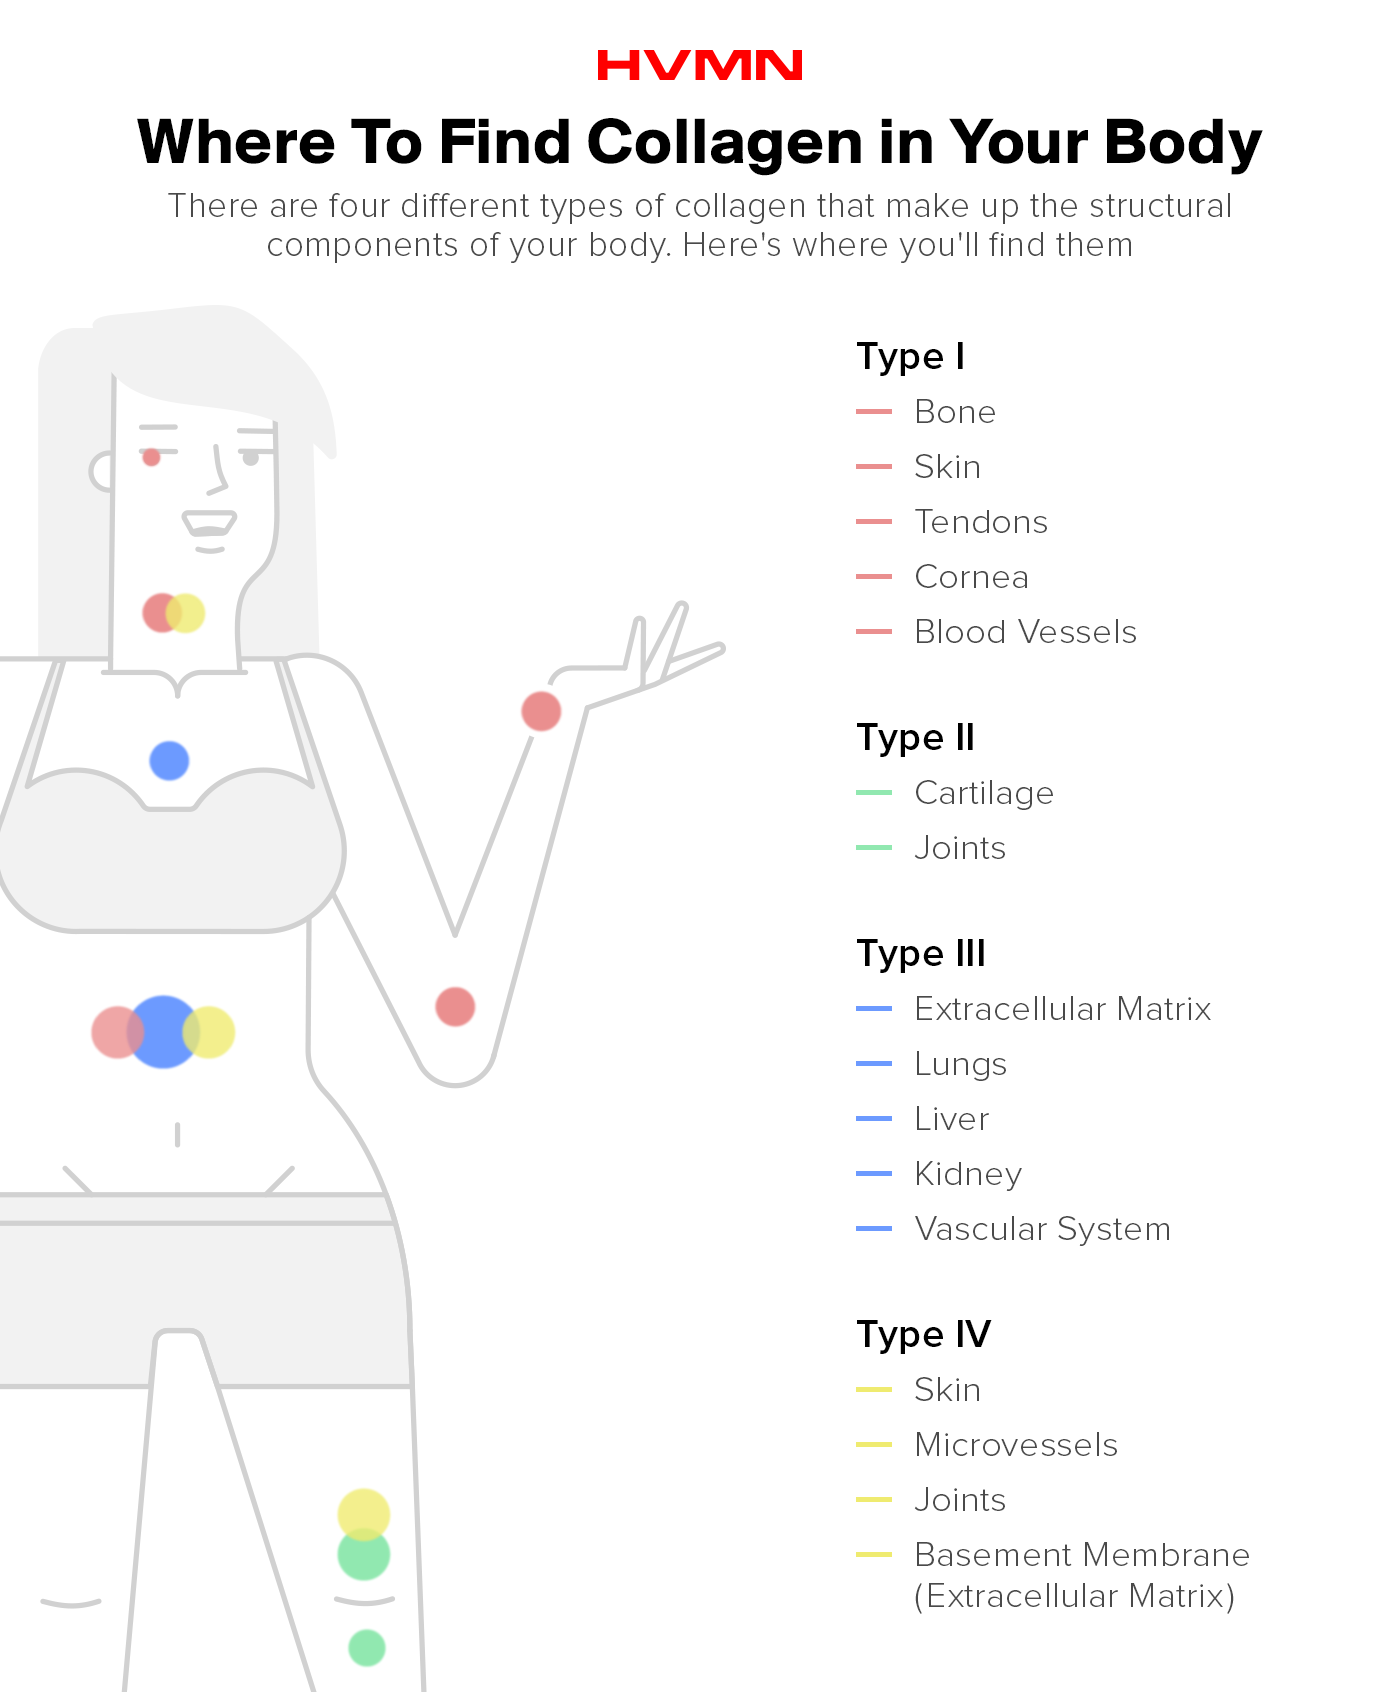 An illustration of a woman with different colored bubbles on her body, showing where, in the body, you can find collagen